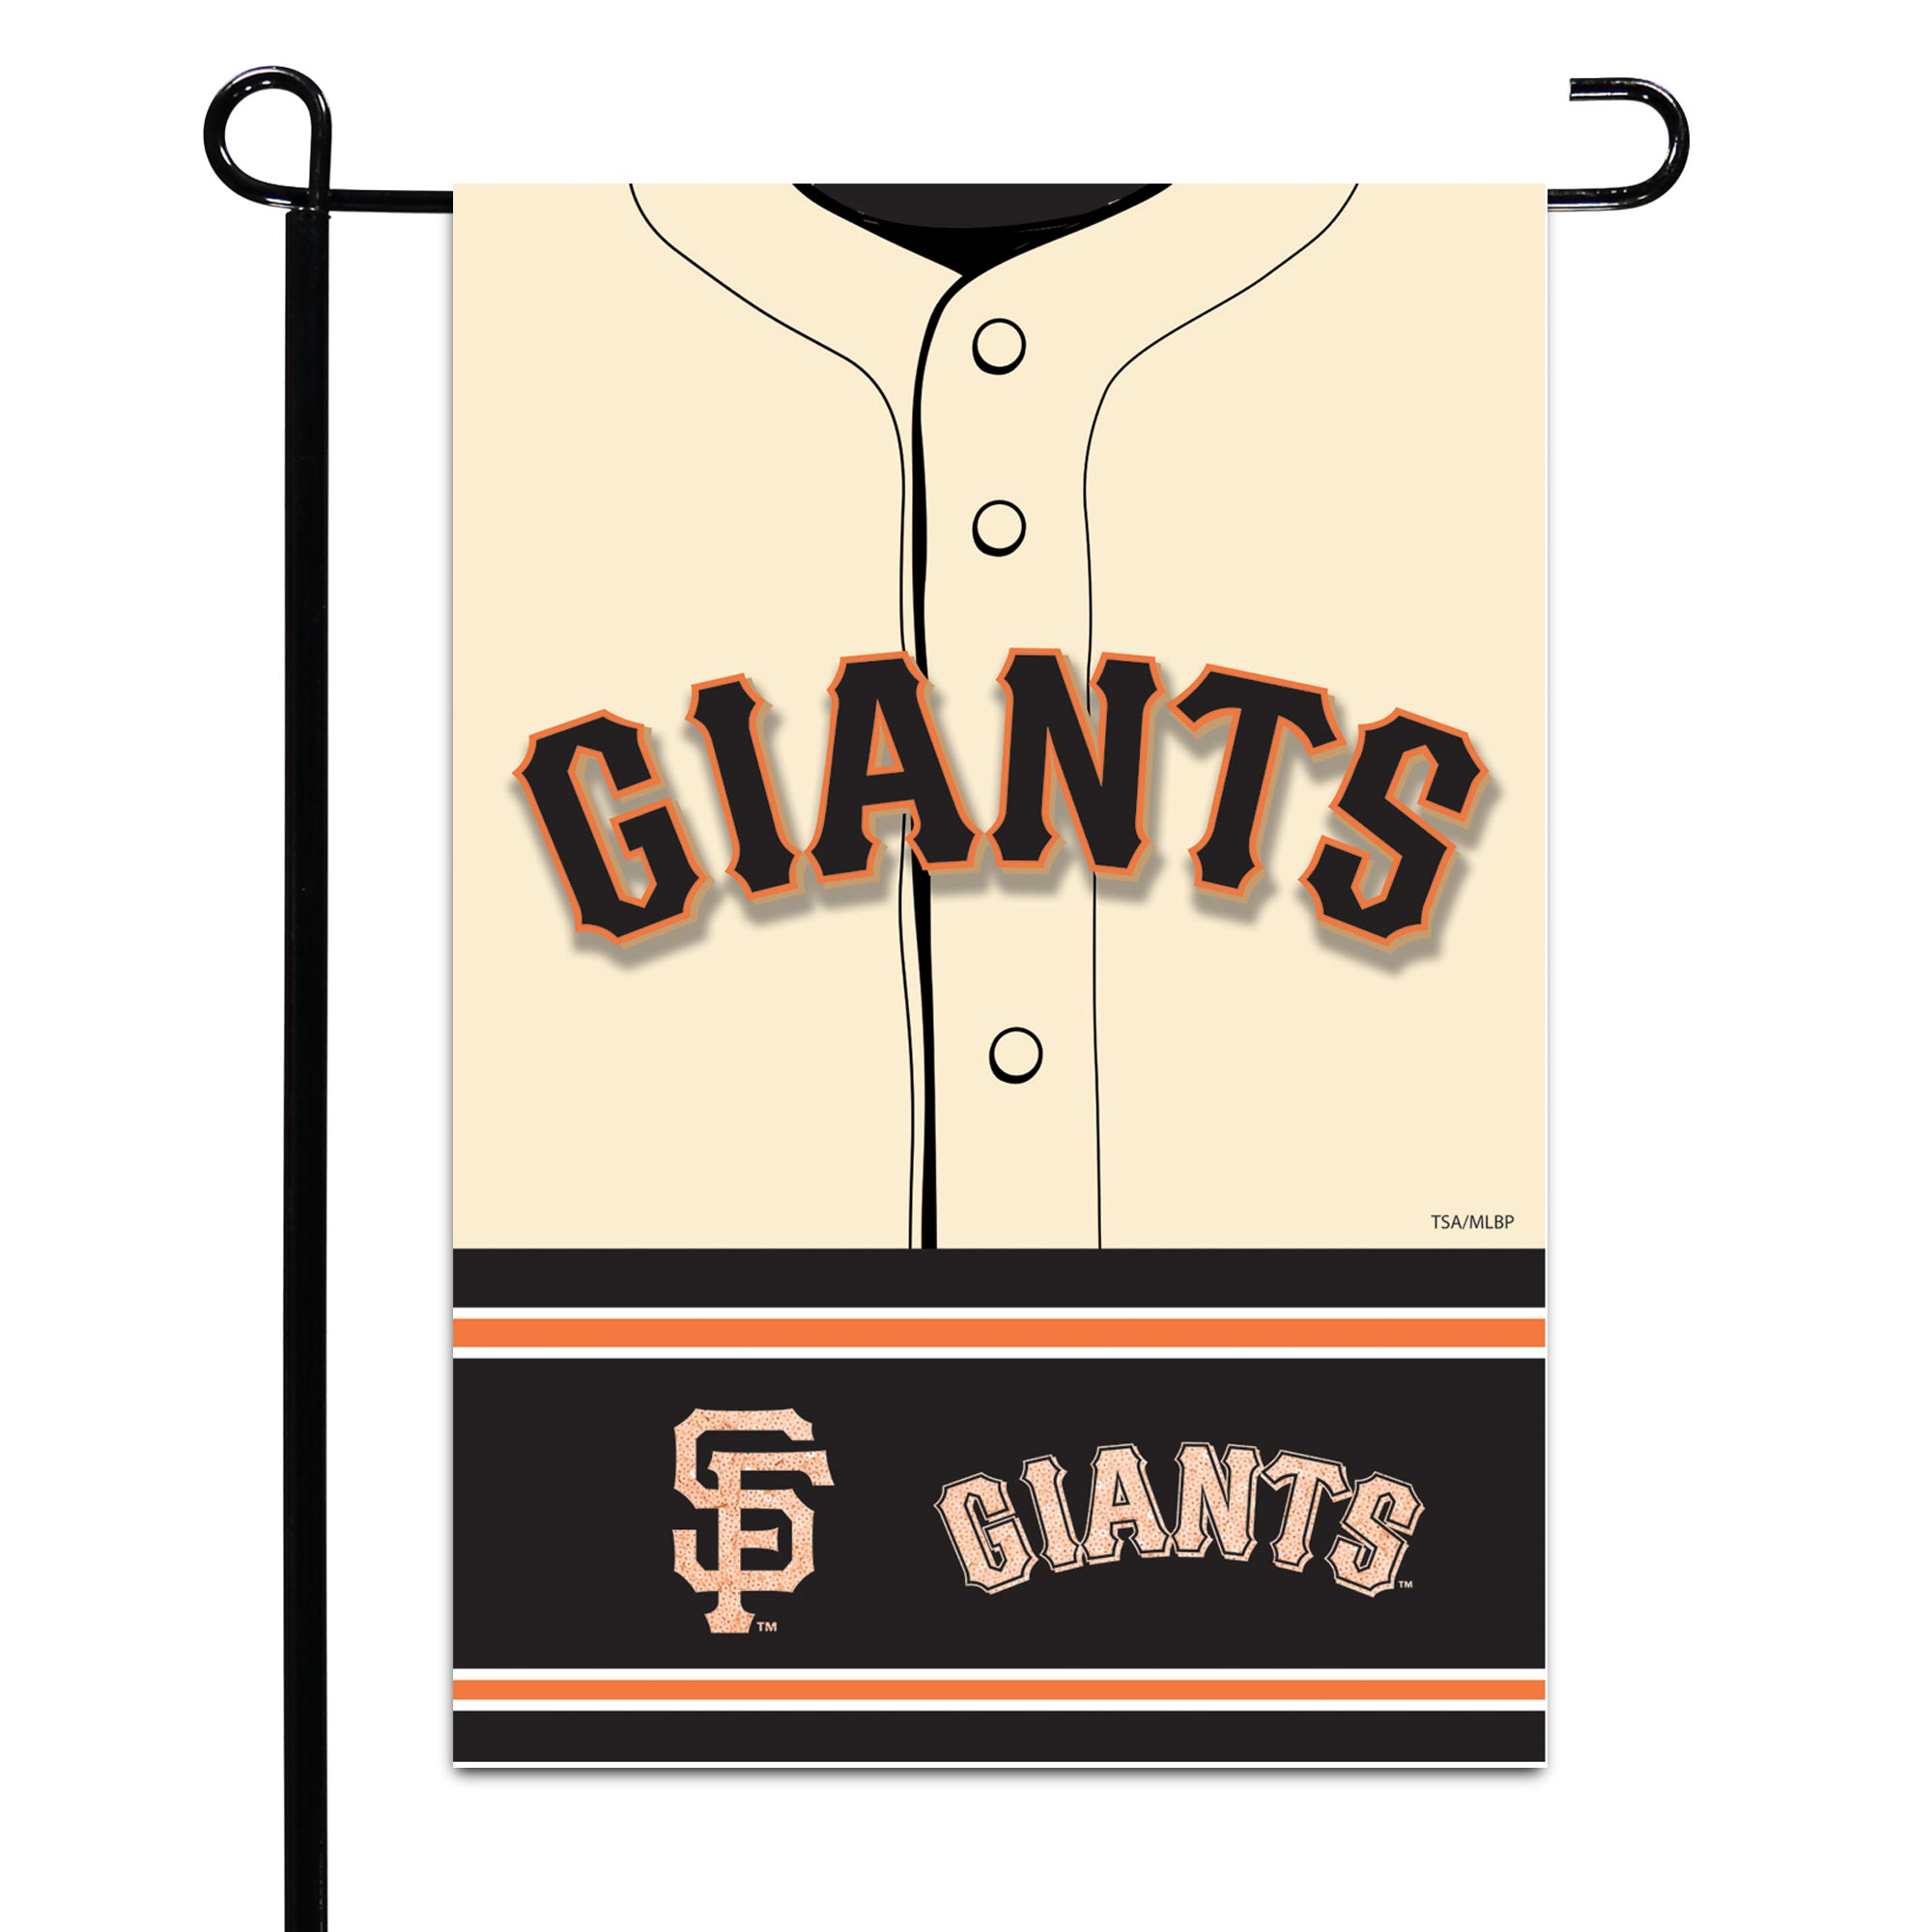 """San Francisco Giants 12.5"""" x 18"""" Double-Sided Jersey Foil Garden Flag - No Size"""